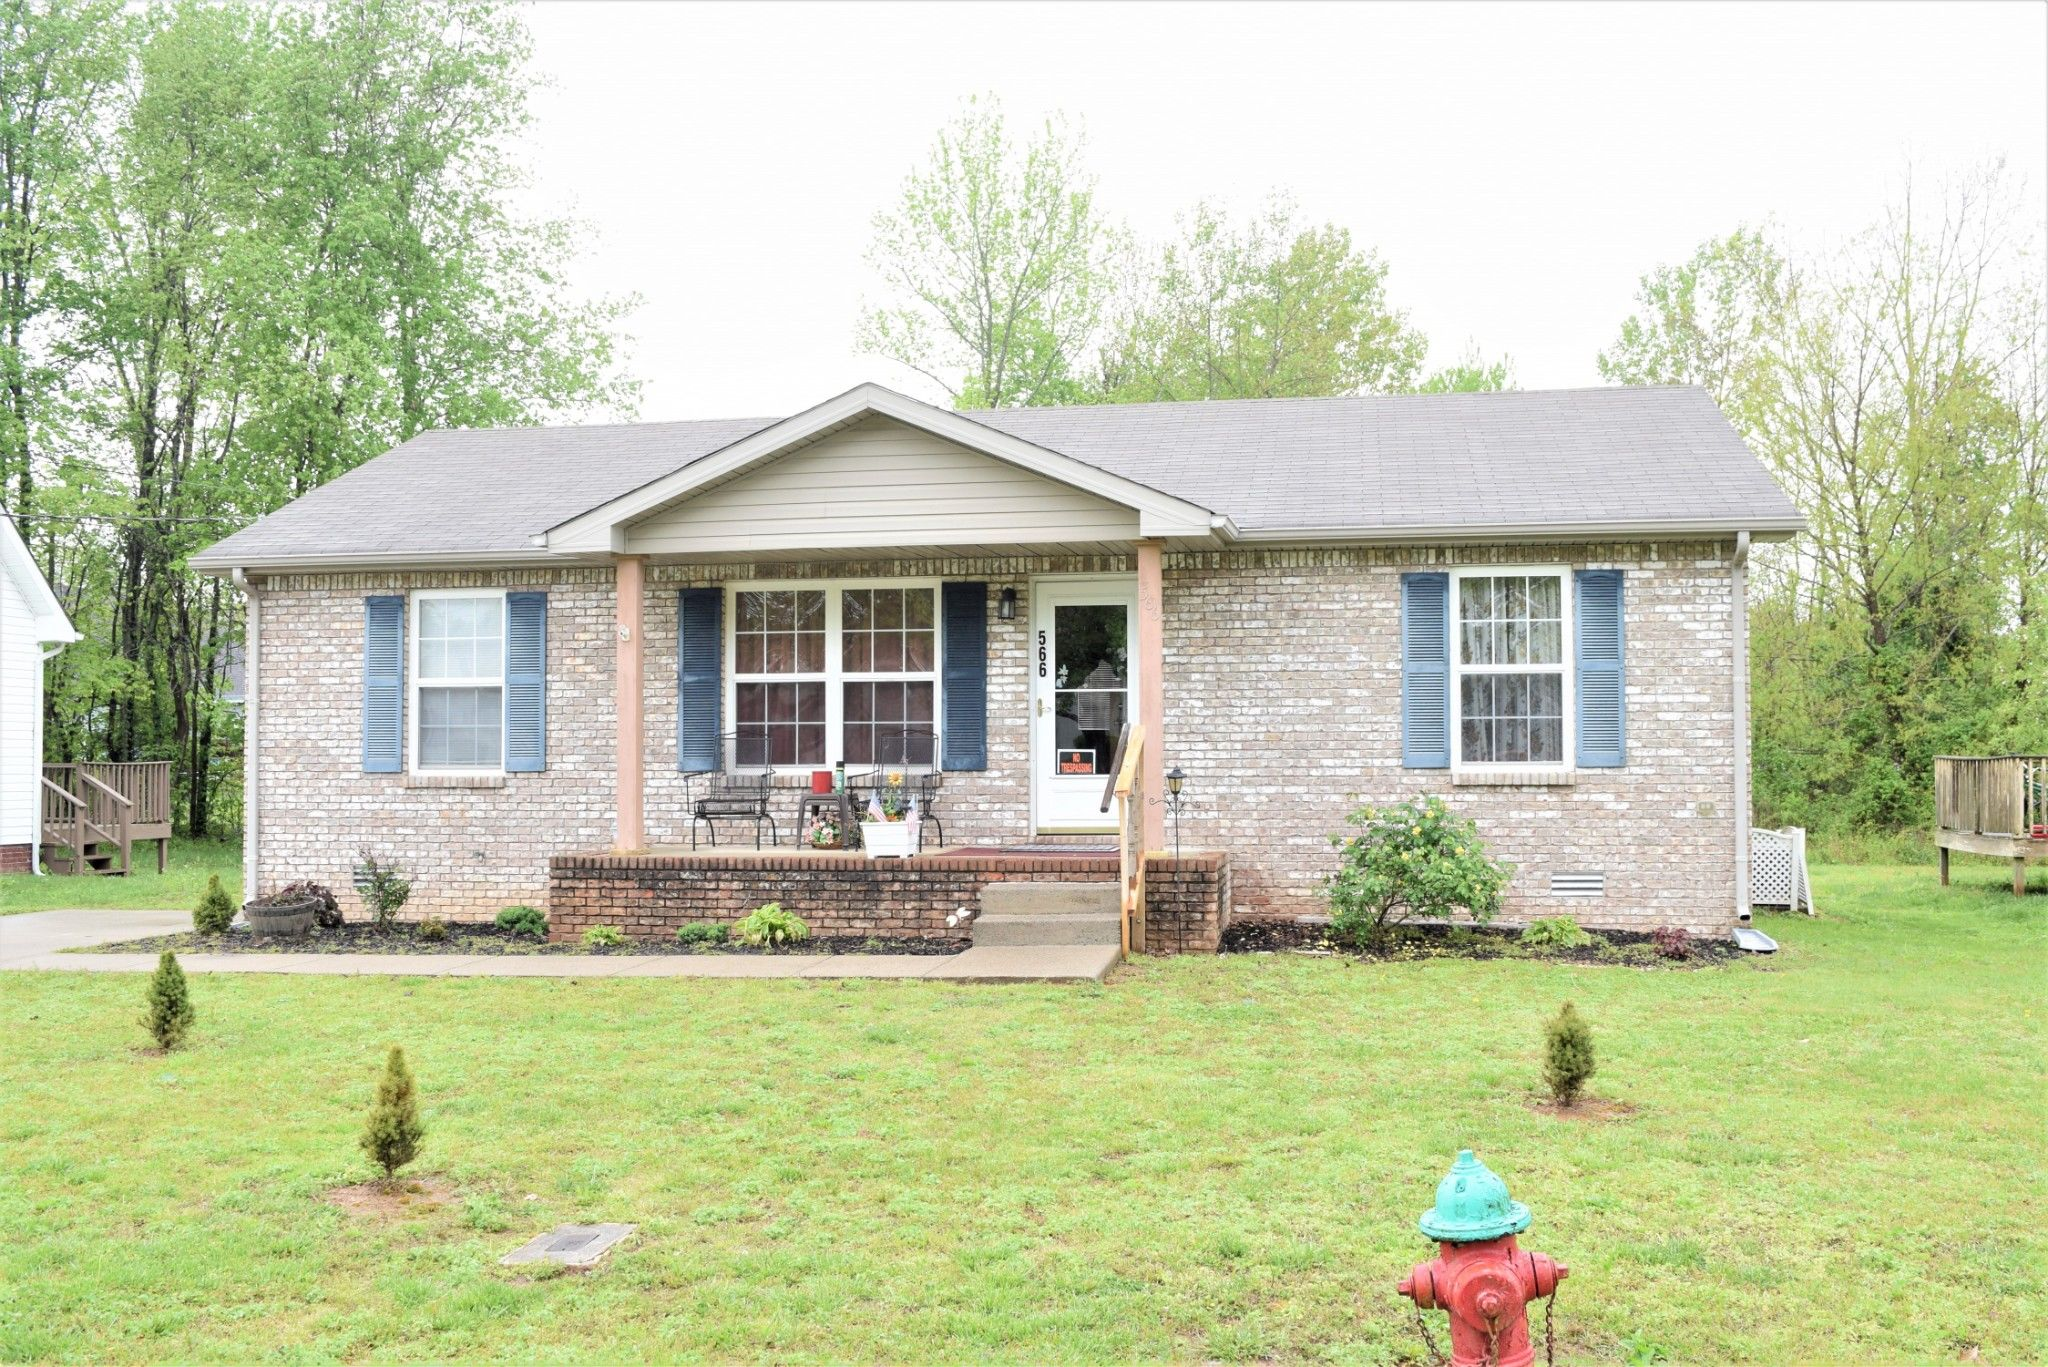 Homes for Sale in South Haven Subdivision Clarksville TN 37042